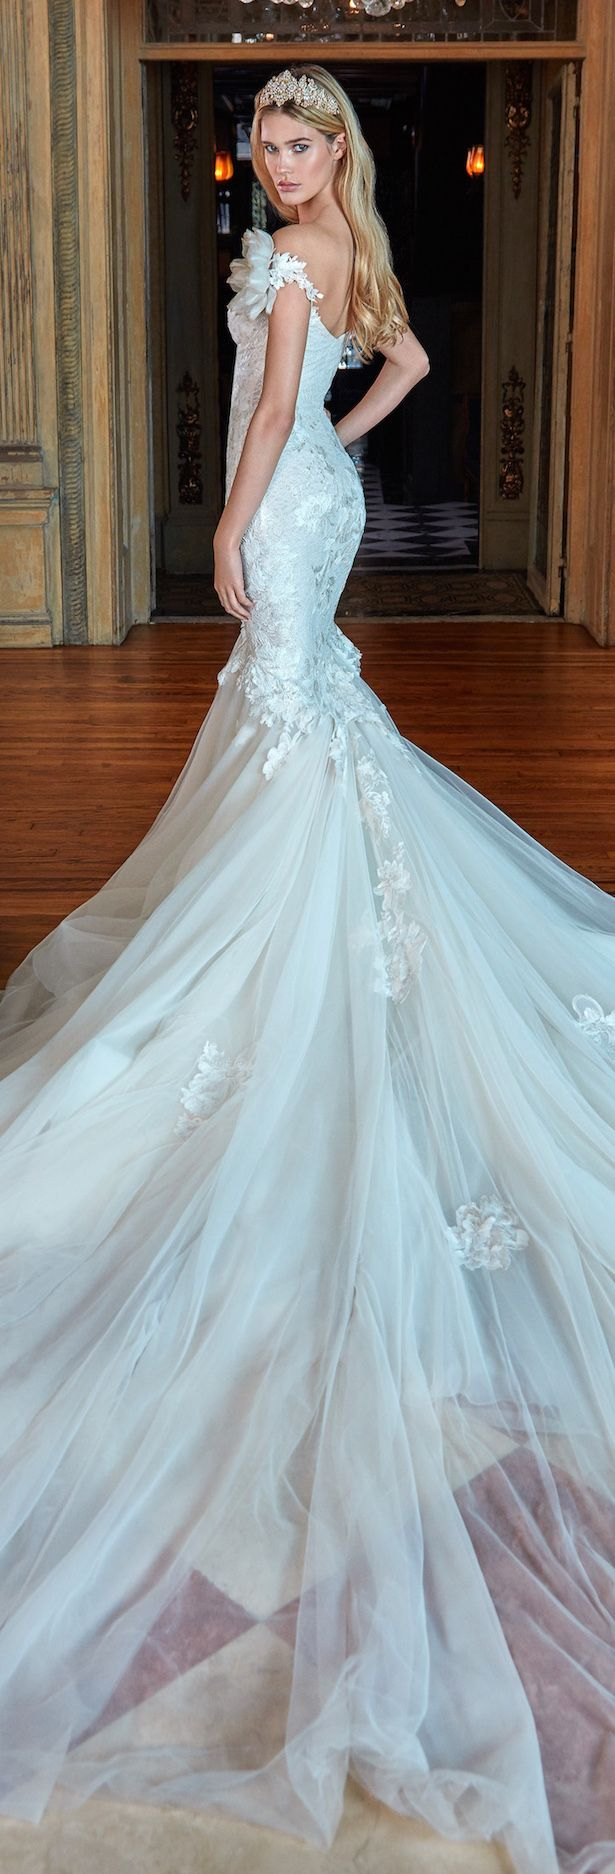 177 best Say Yes to the Dress images on Pinterest | Wedding ...